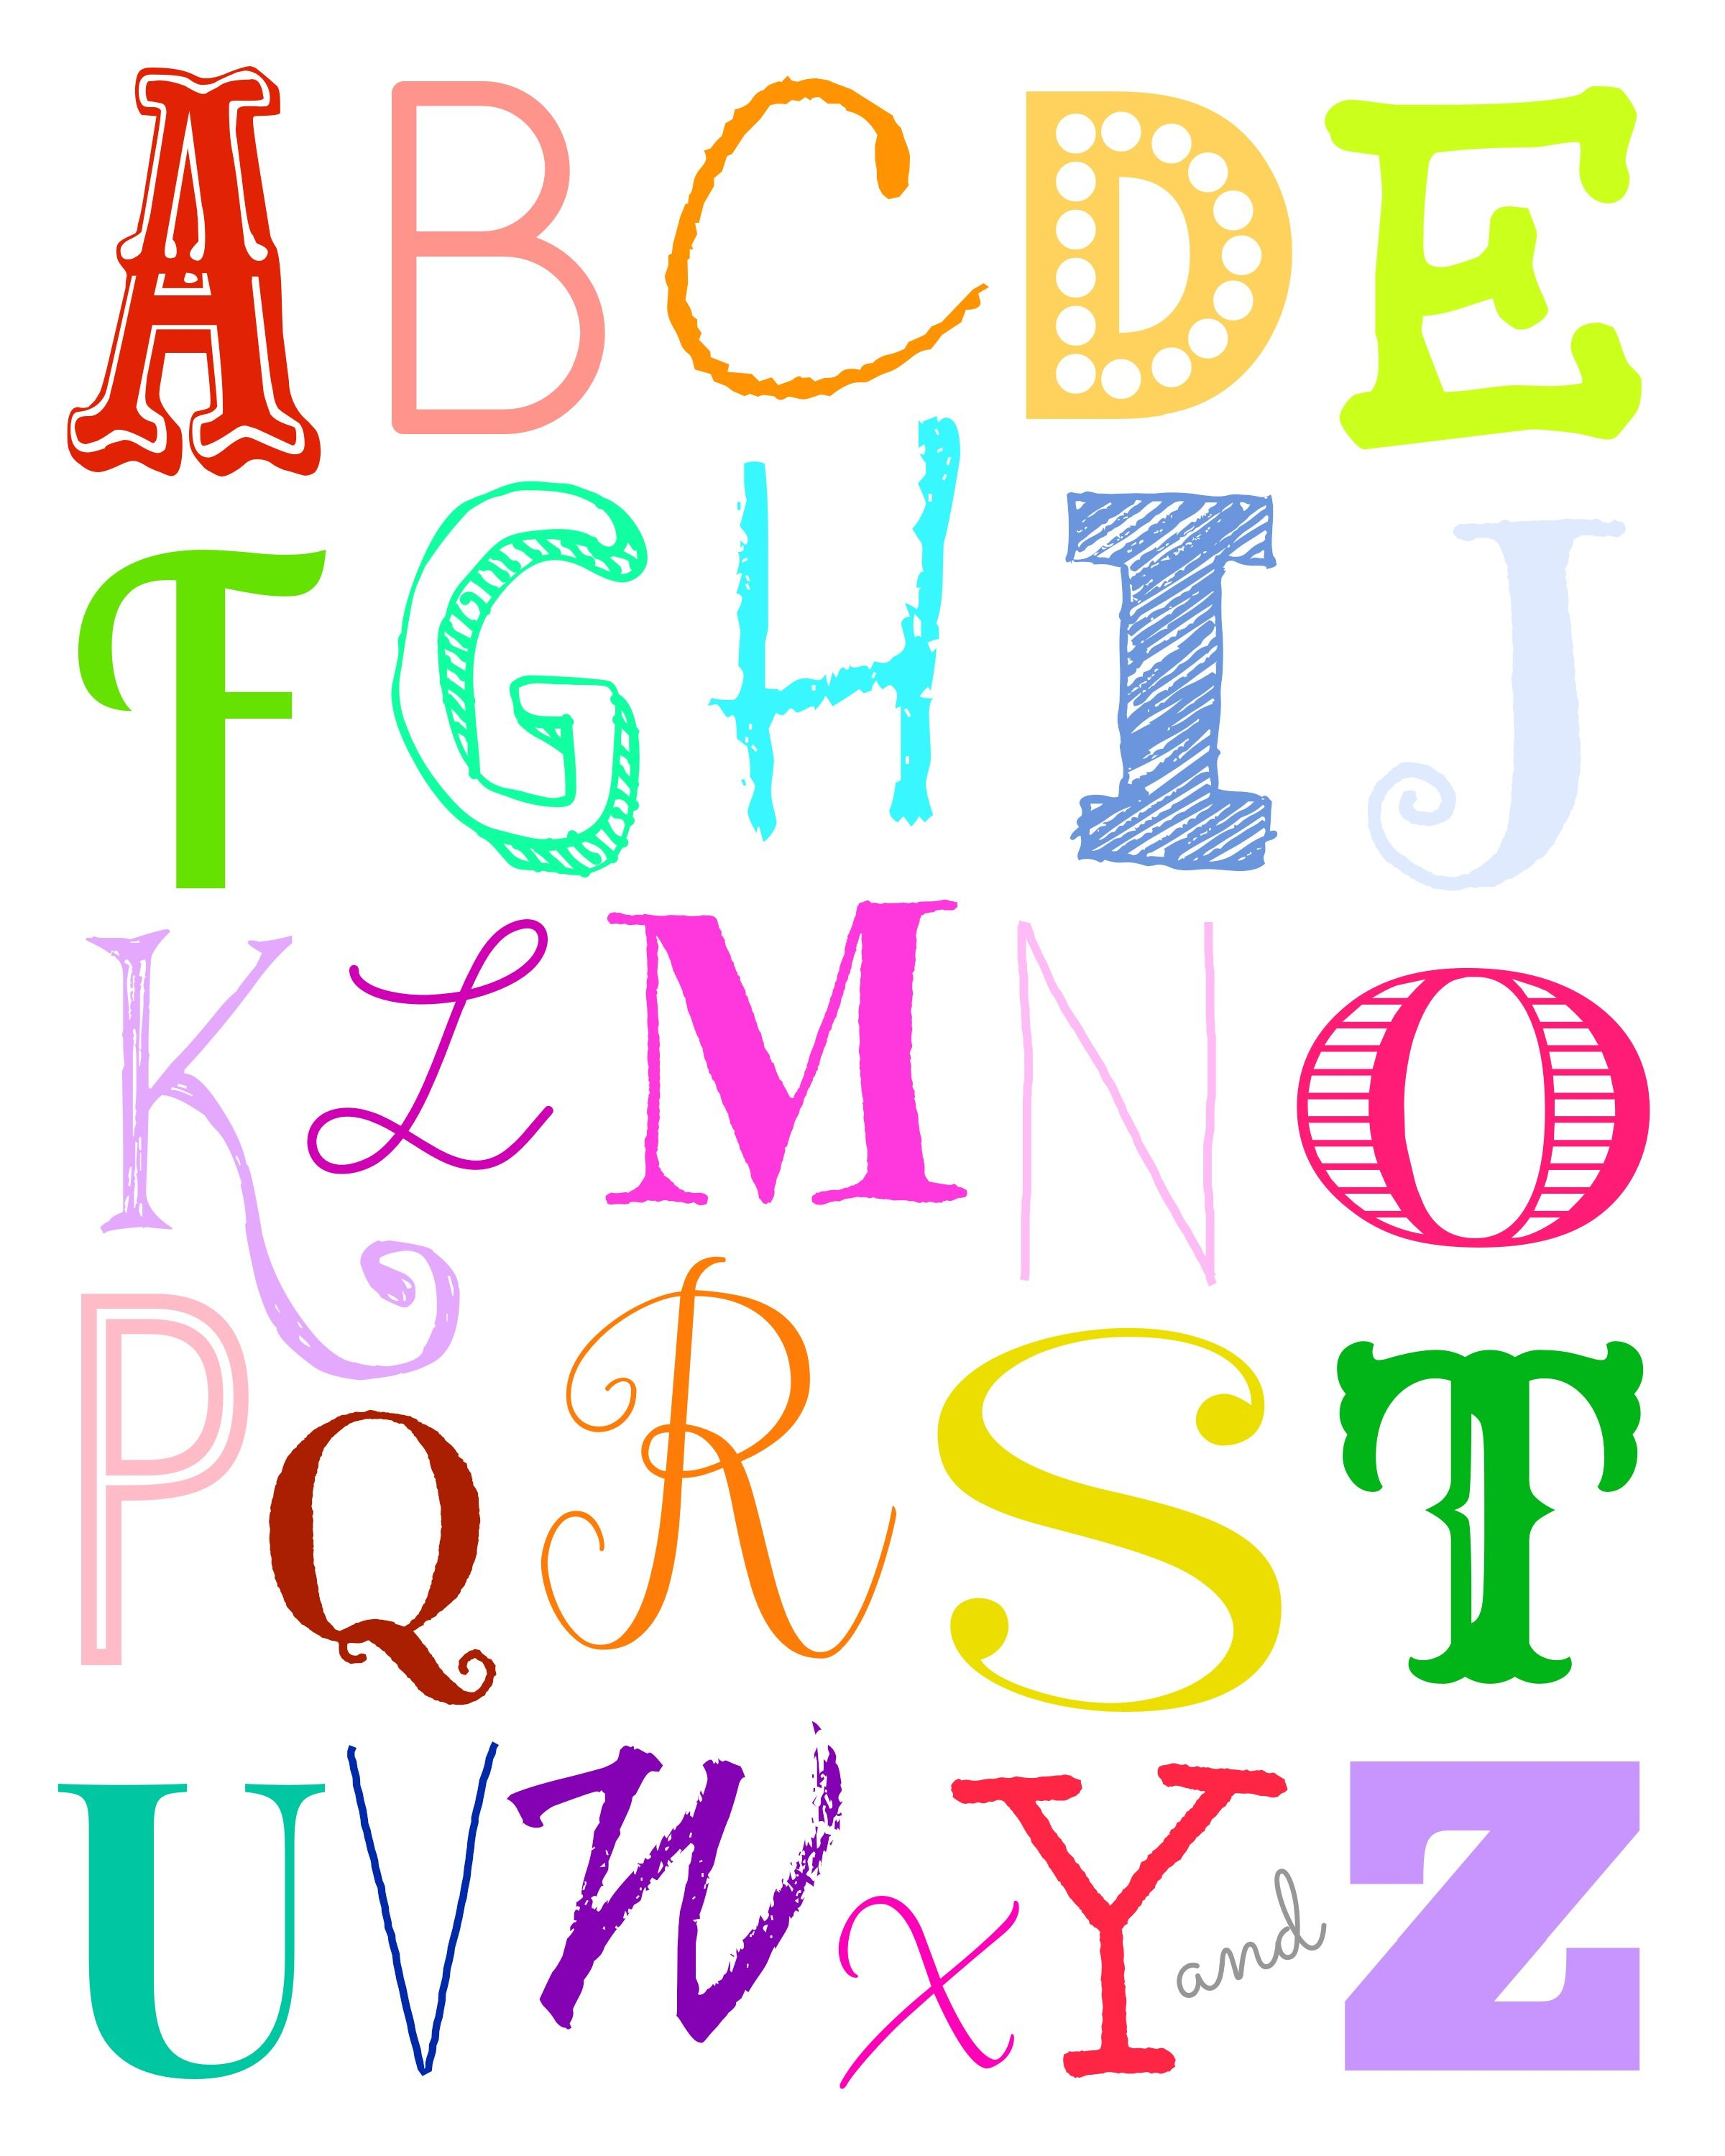 Free Downloadable Alphabet Art Print Size 8 X10 From